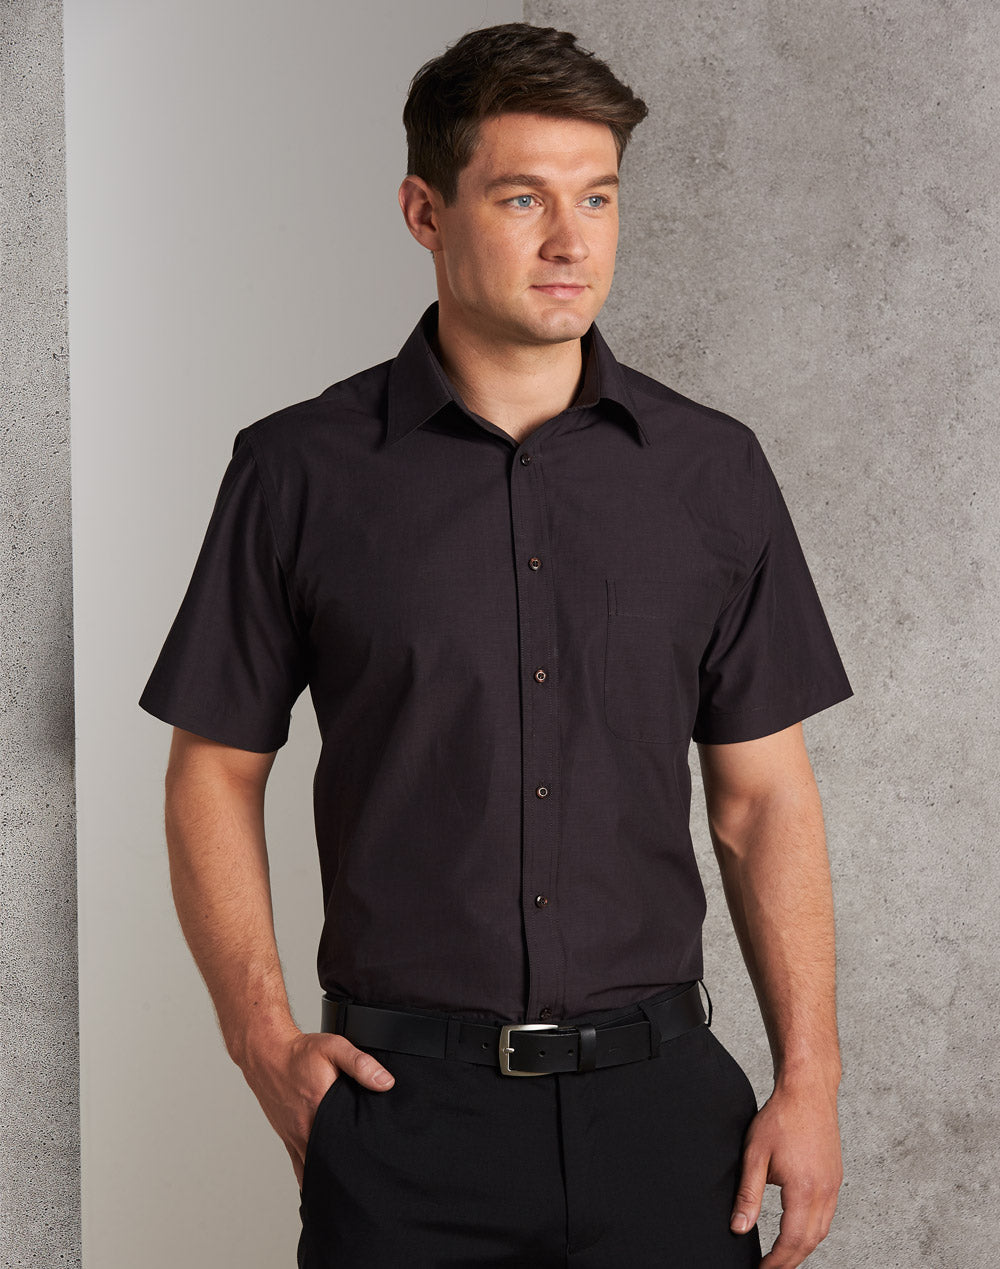 [M7001] Men's Nano Tech Short Sleeve Shirt